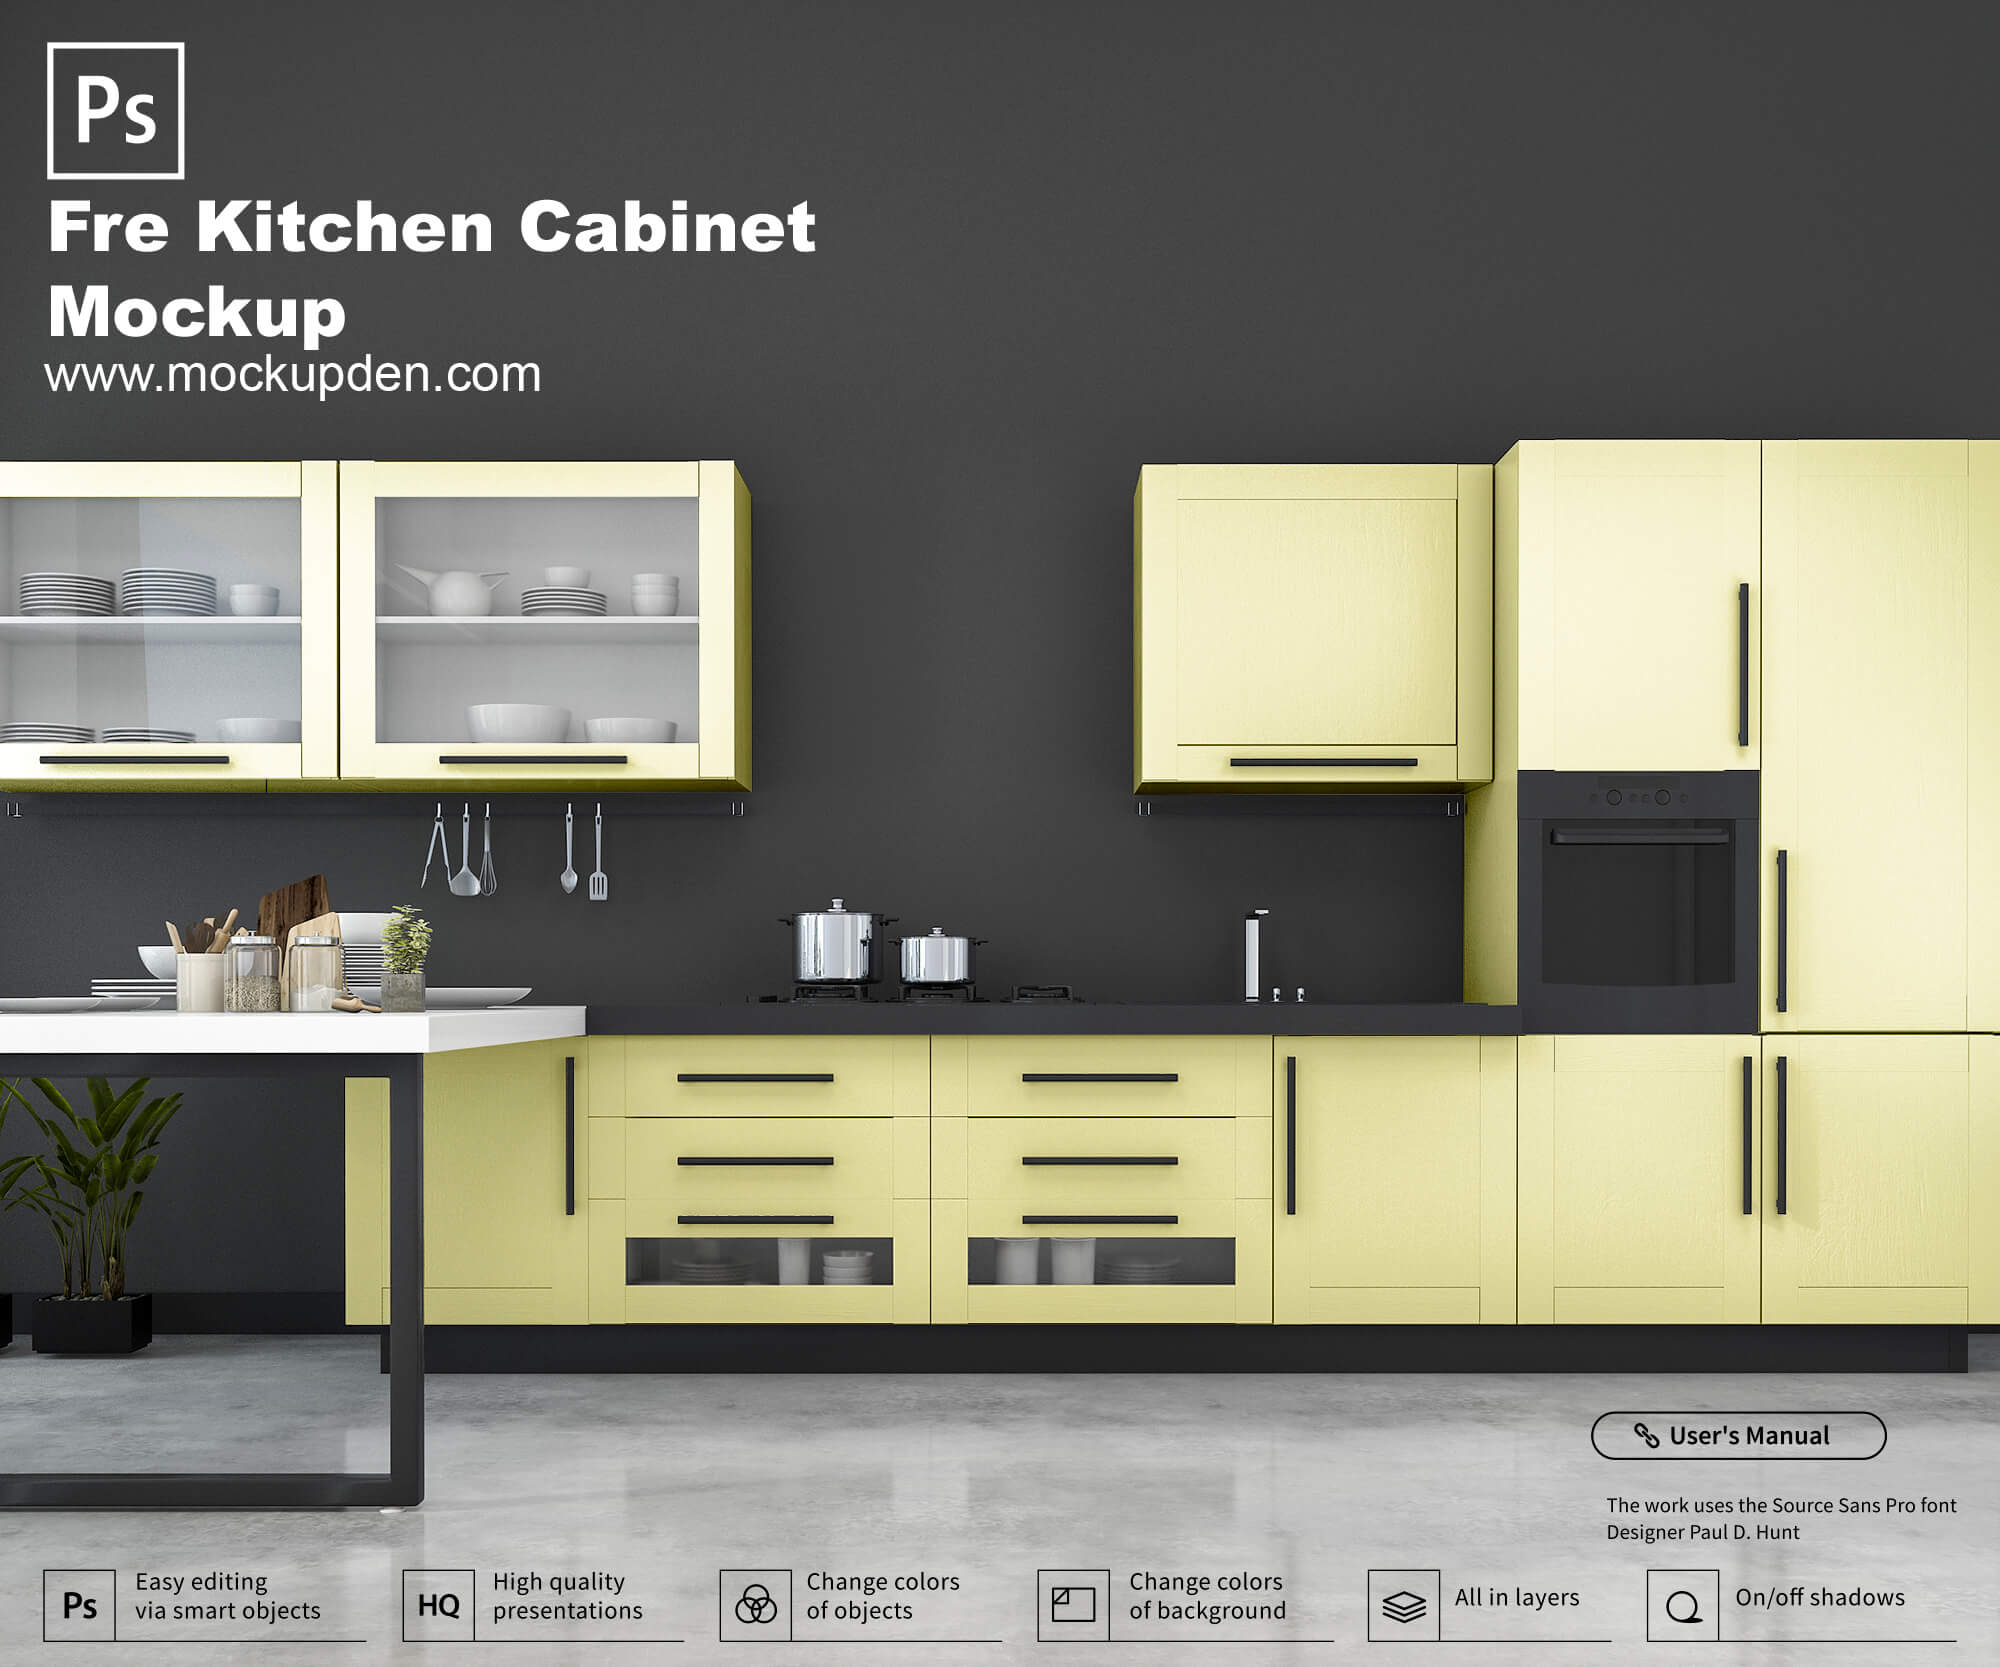 Free Kitchen Cabinet Mockup PSD Template